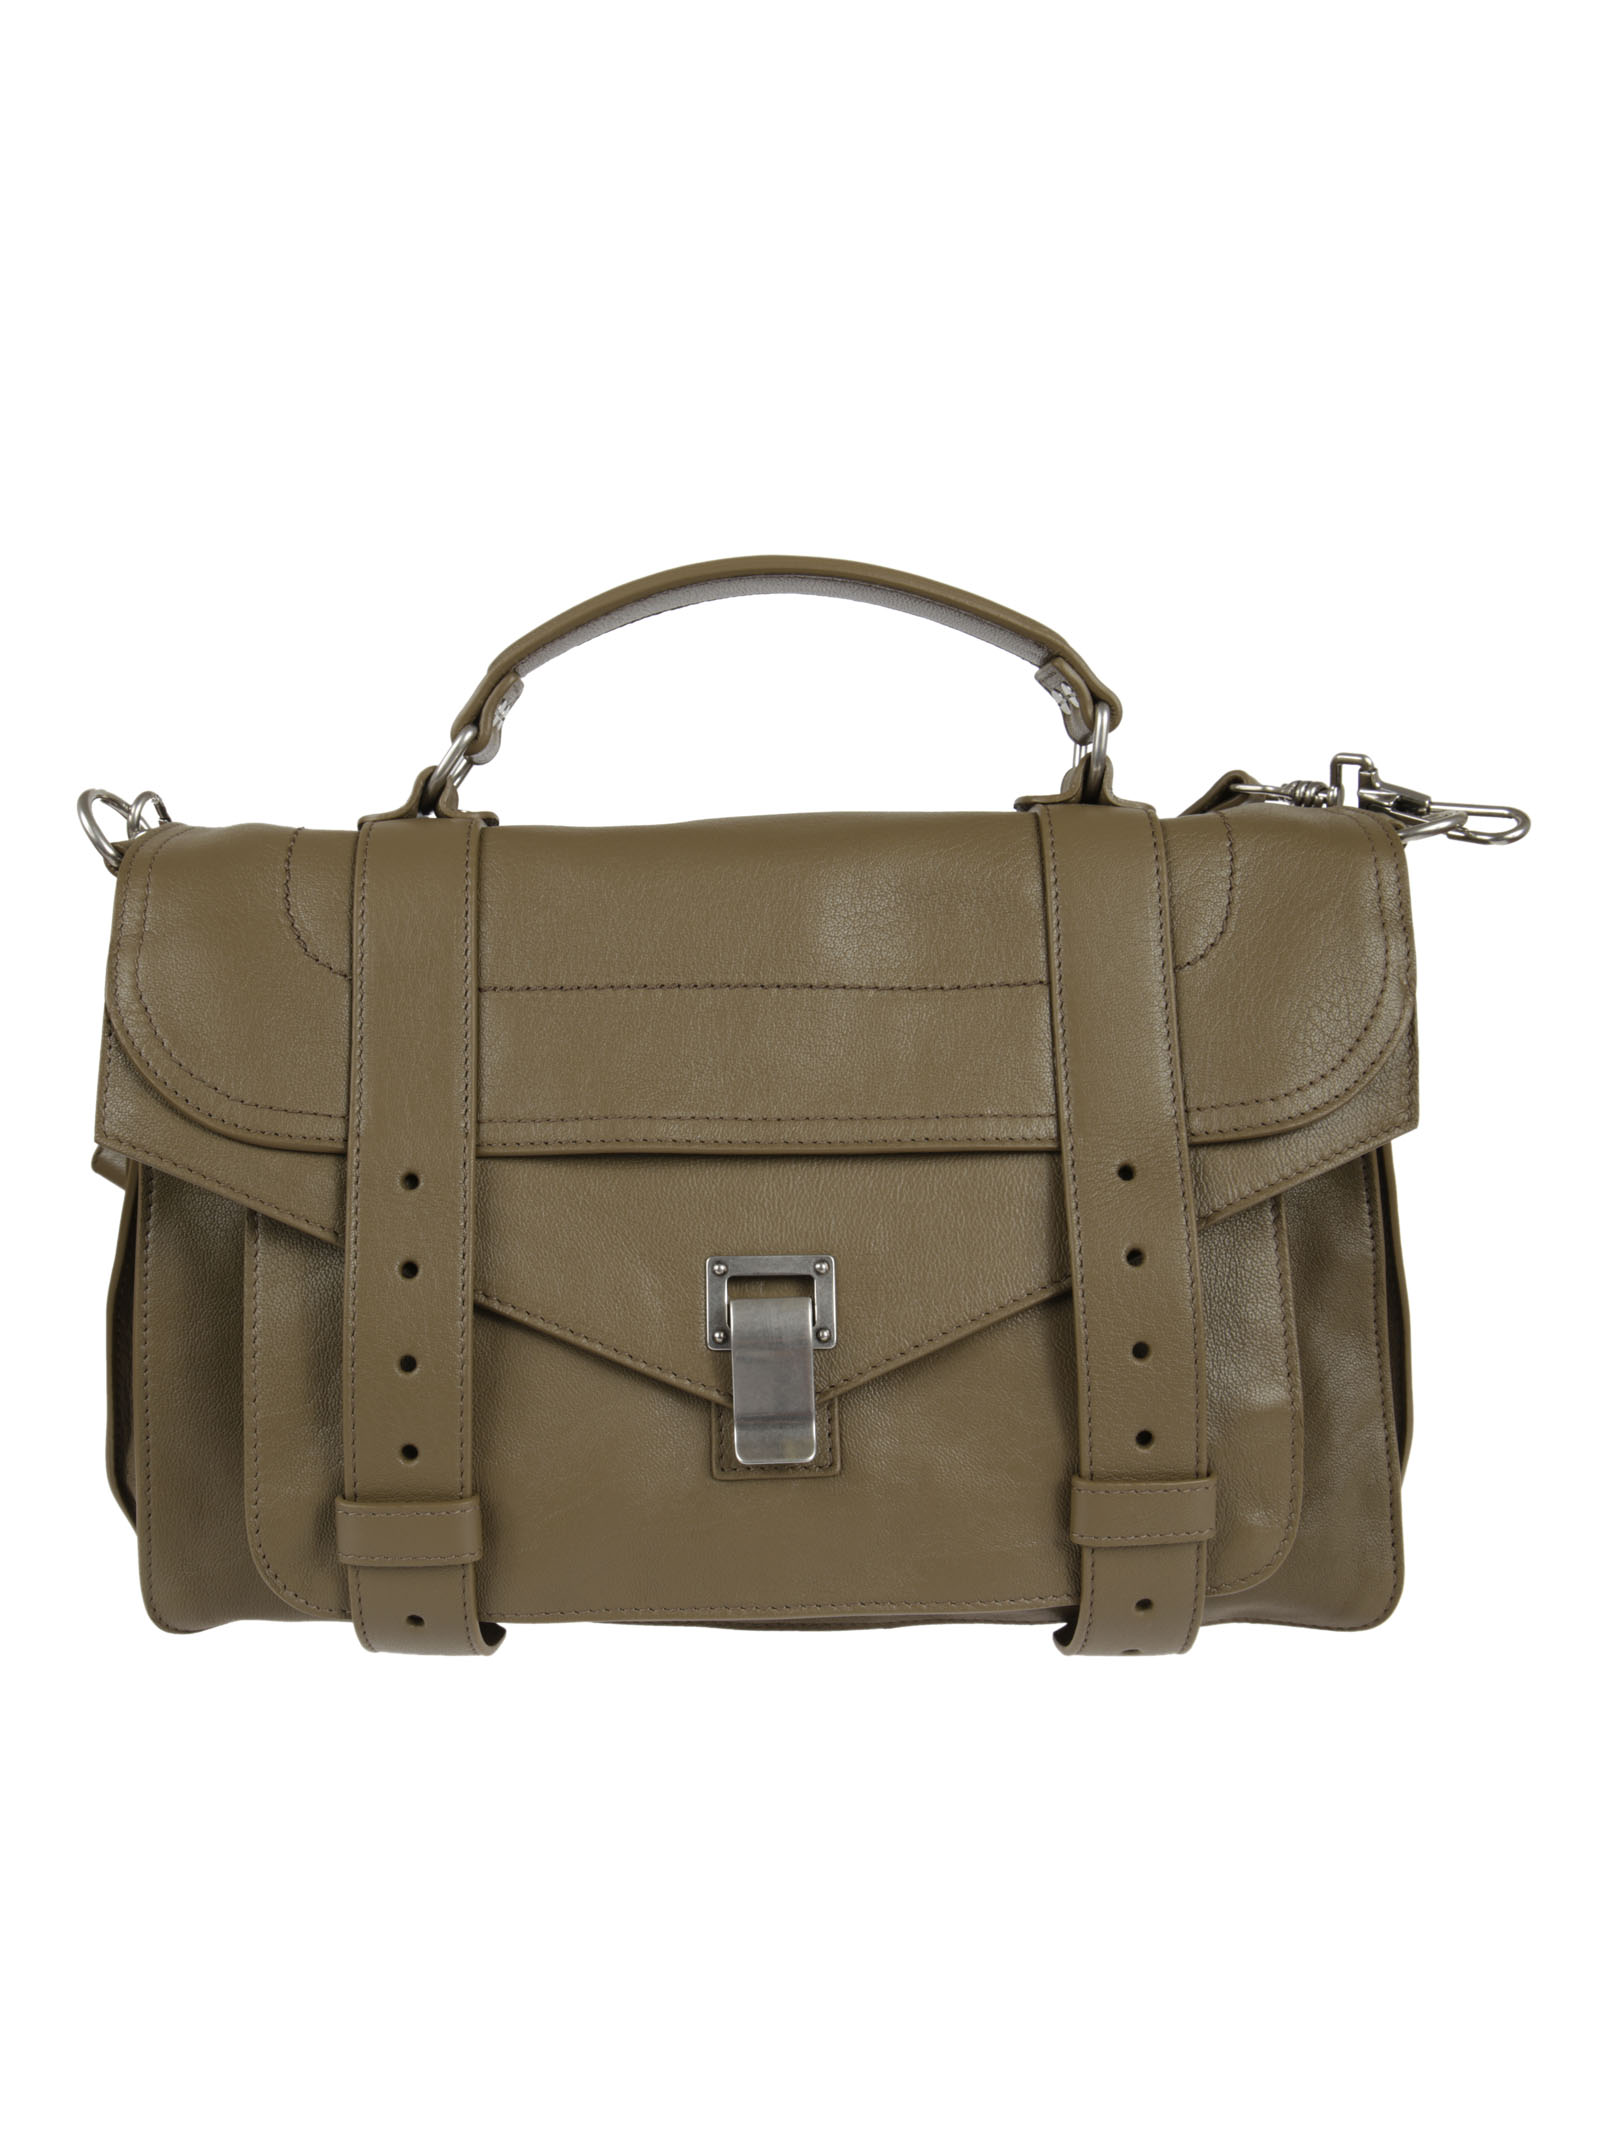 Proenza Schouler PS1 MEDIUM LUX